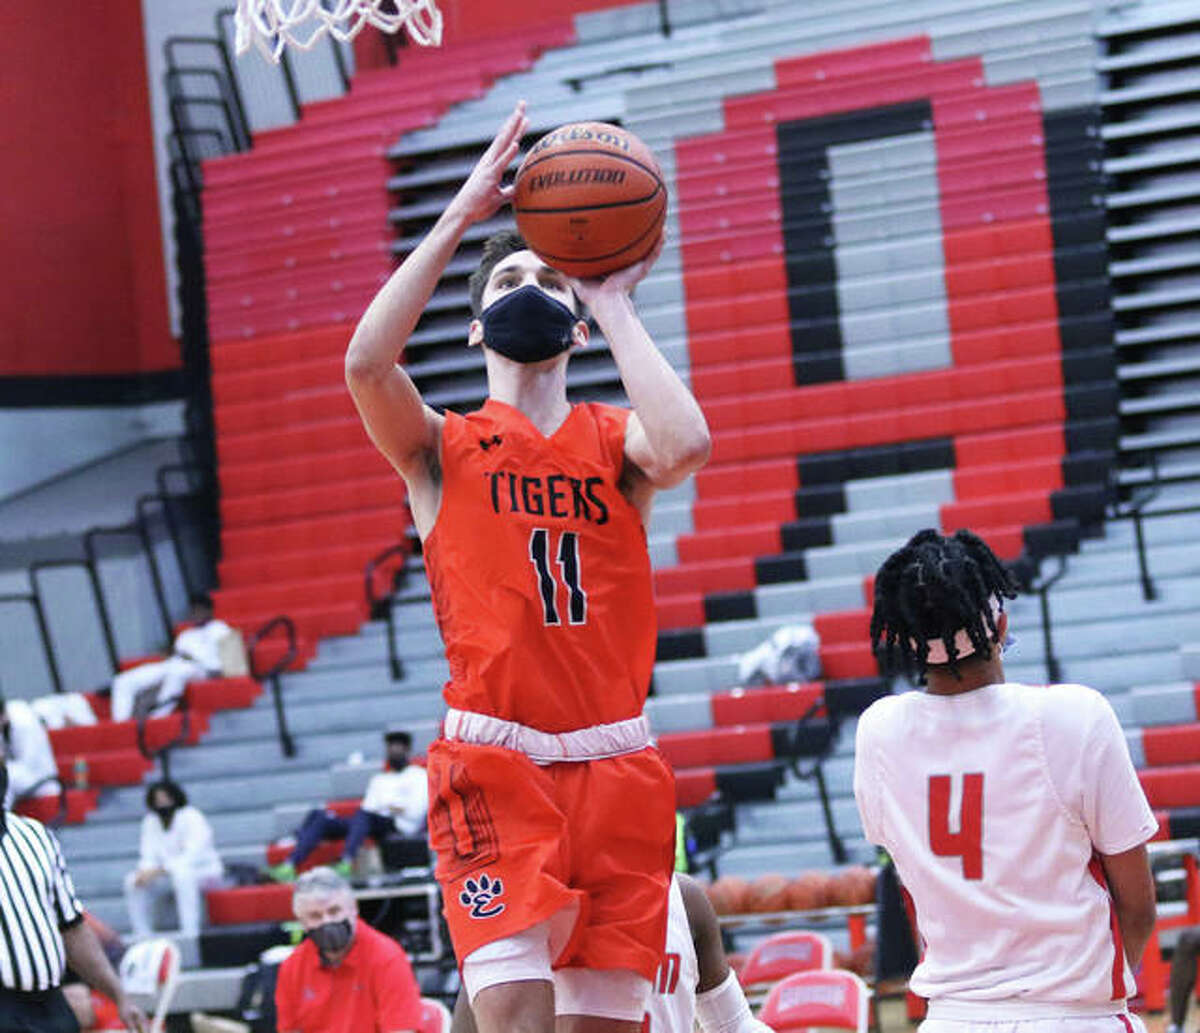 Edwardsville's Brennan Weller (11) sidesteps Alton's Lathan O'Quinn and scores two of his 30 points in Saturday's SWC win over the Redbirds at Alton High in Godfrey. Weller joined the Tigers' 1,000-points club with his 14th point in the game.